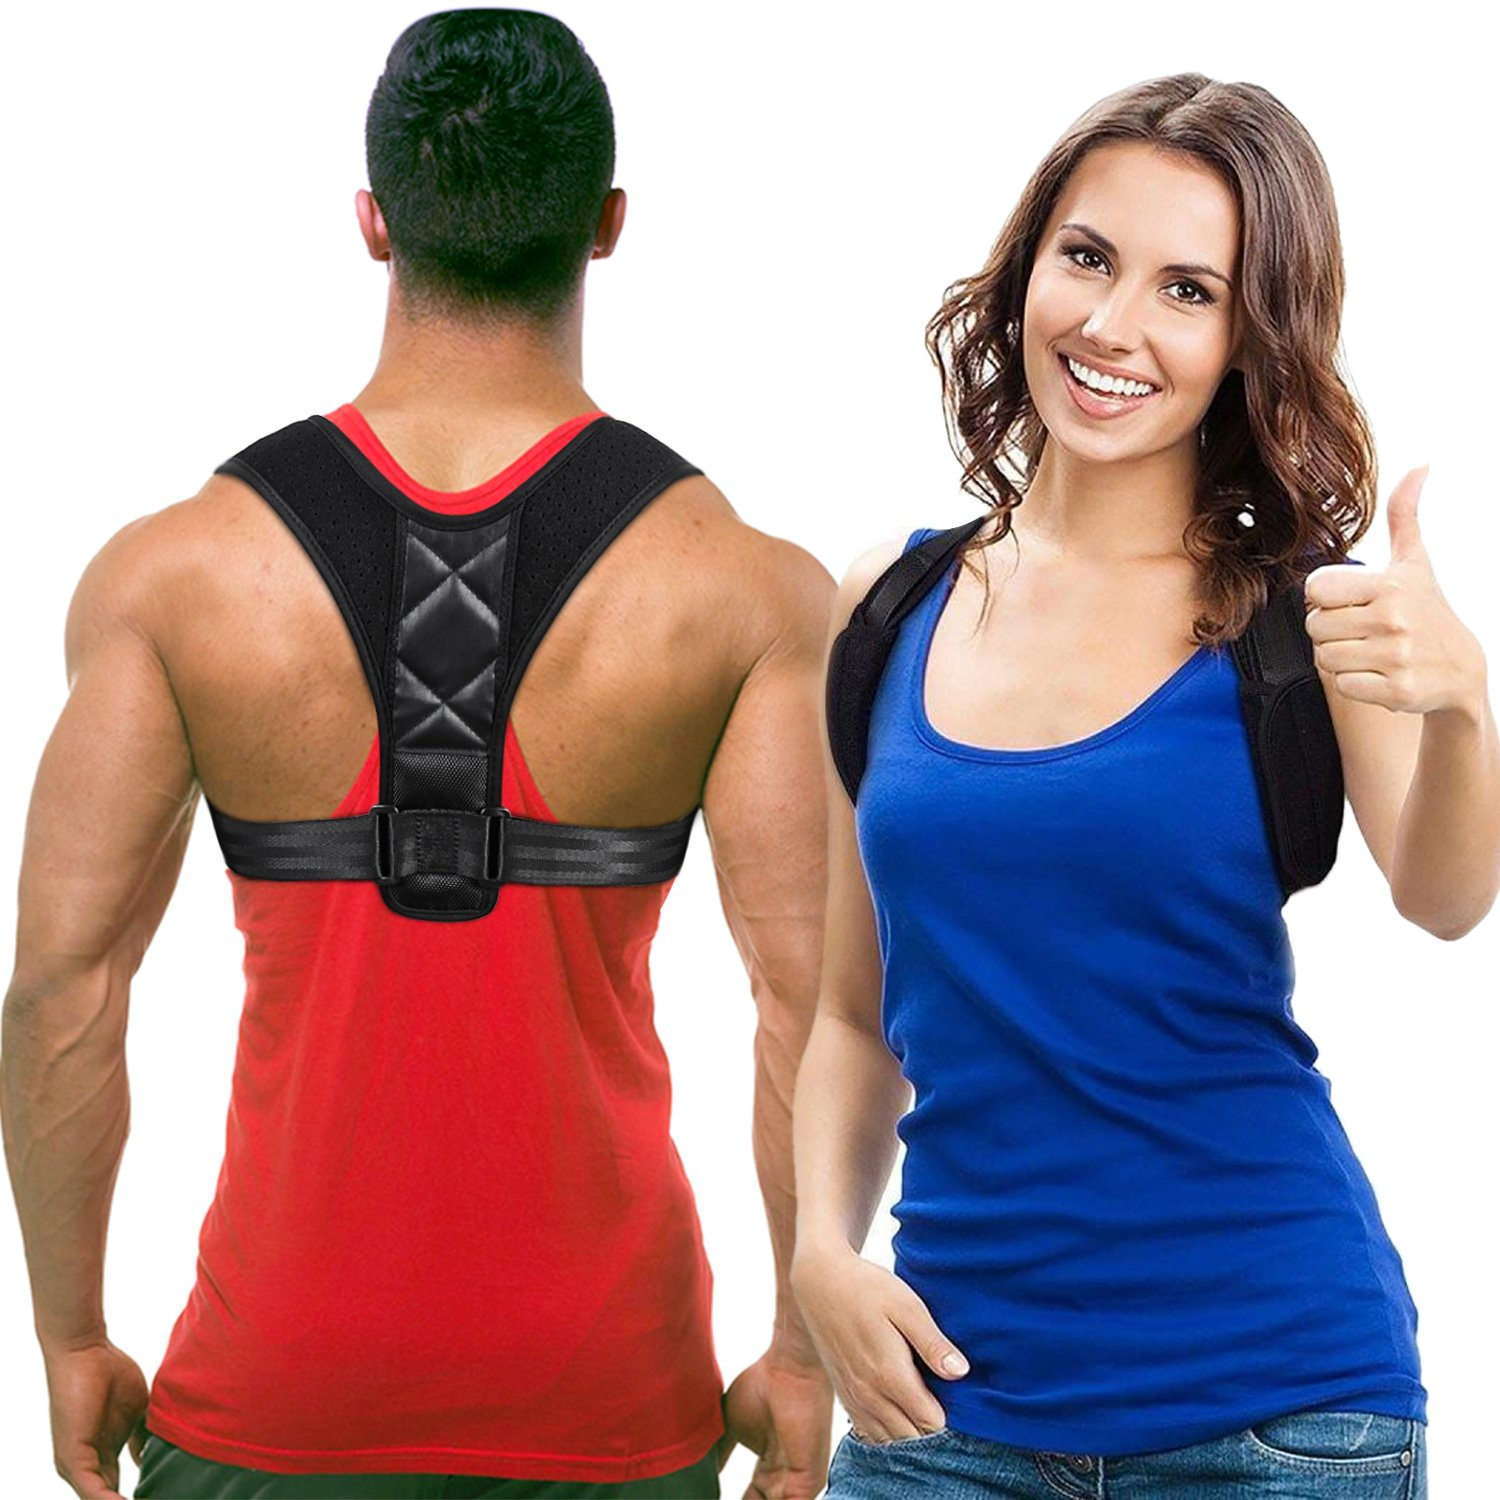 WEIJI Posture Corrector,Effective and Comfortable Adjustable Clavicle Chest Support Back Brace with Two Soft Pad for Men and Women (Size L REG 32''- 41'')